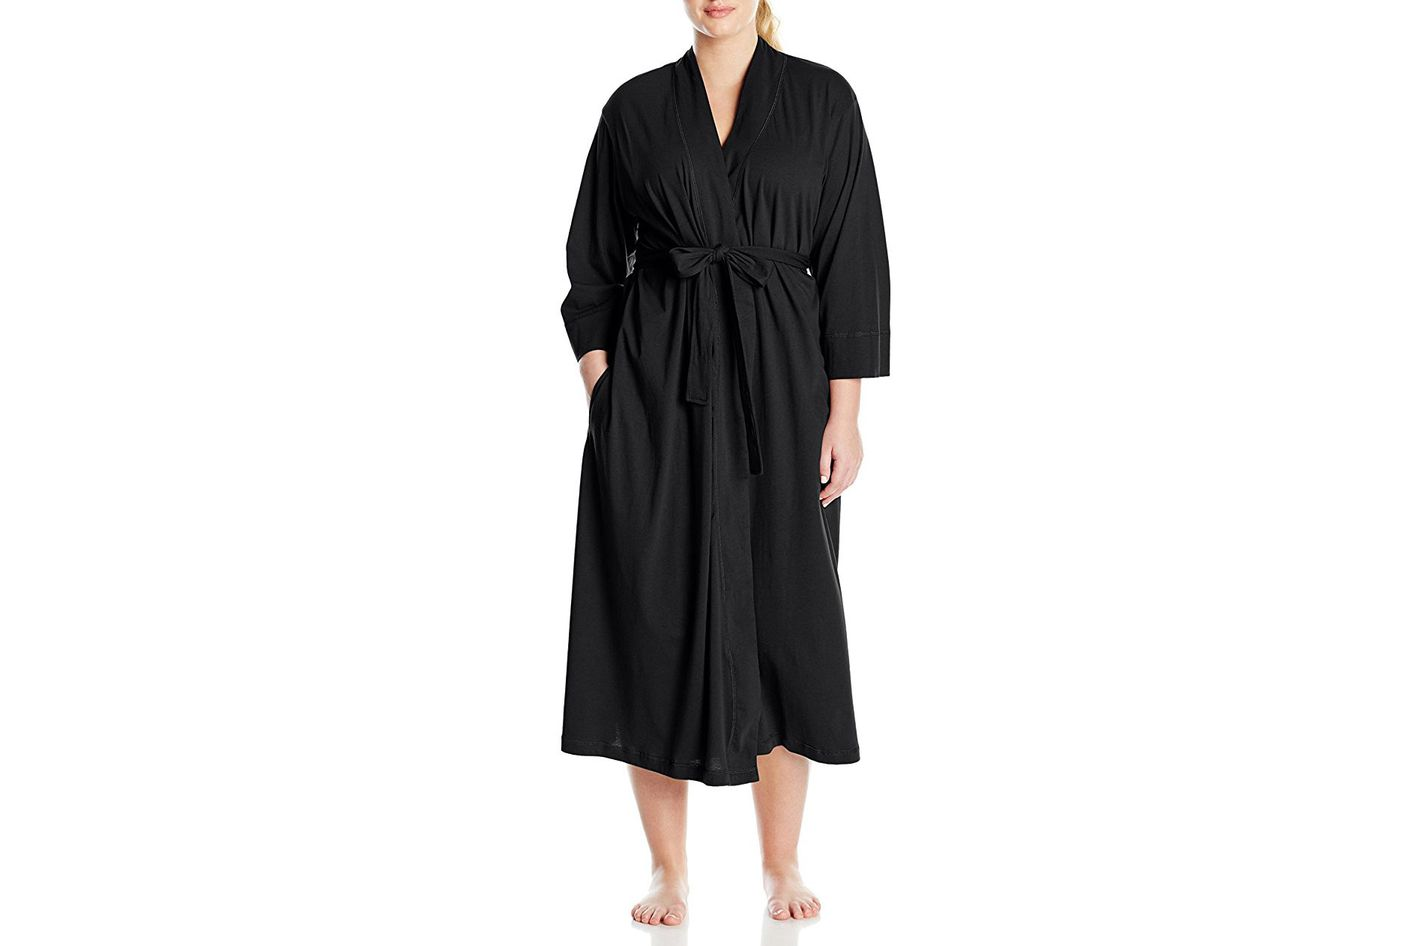 58eaf408aa Jockey Women s Plus Size Bathrobe